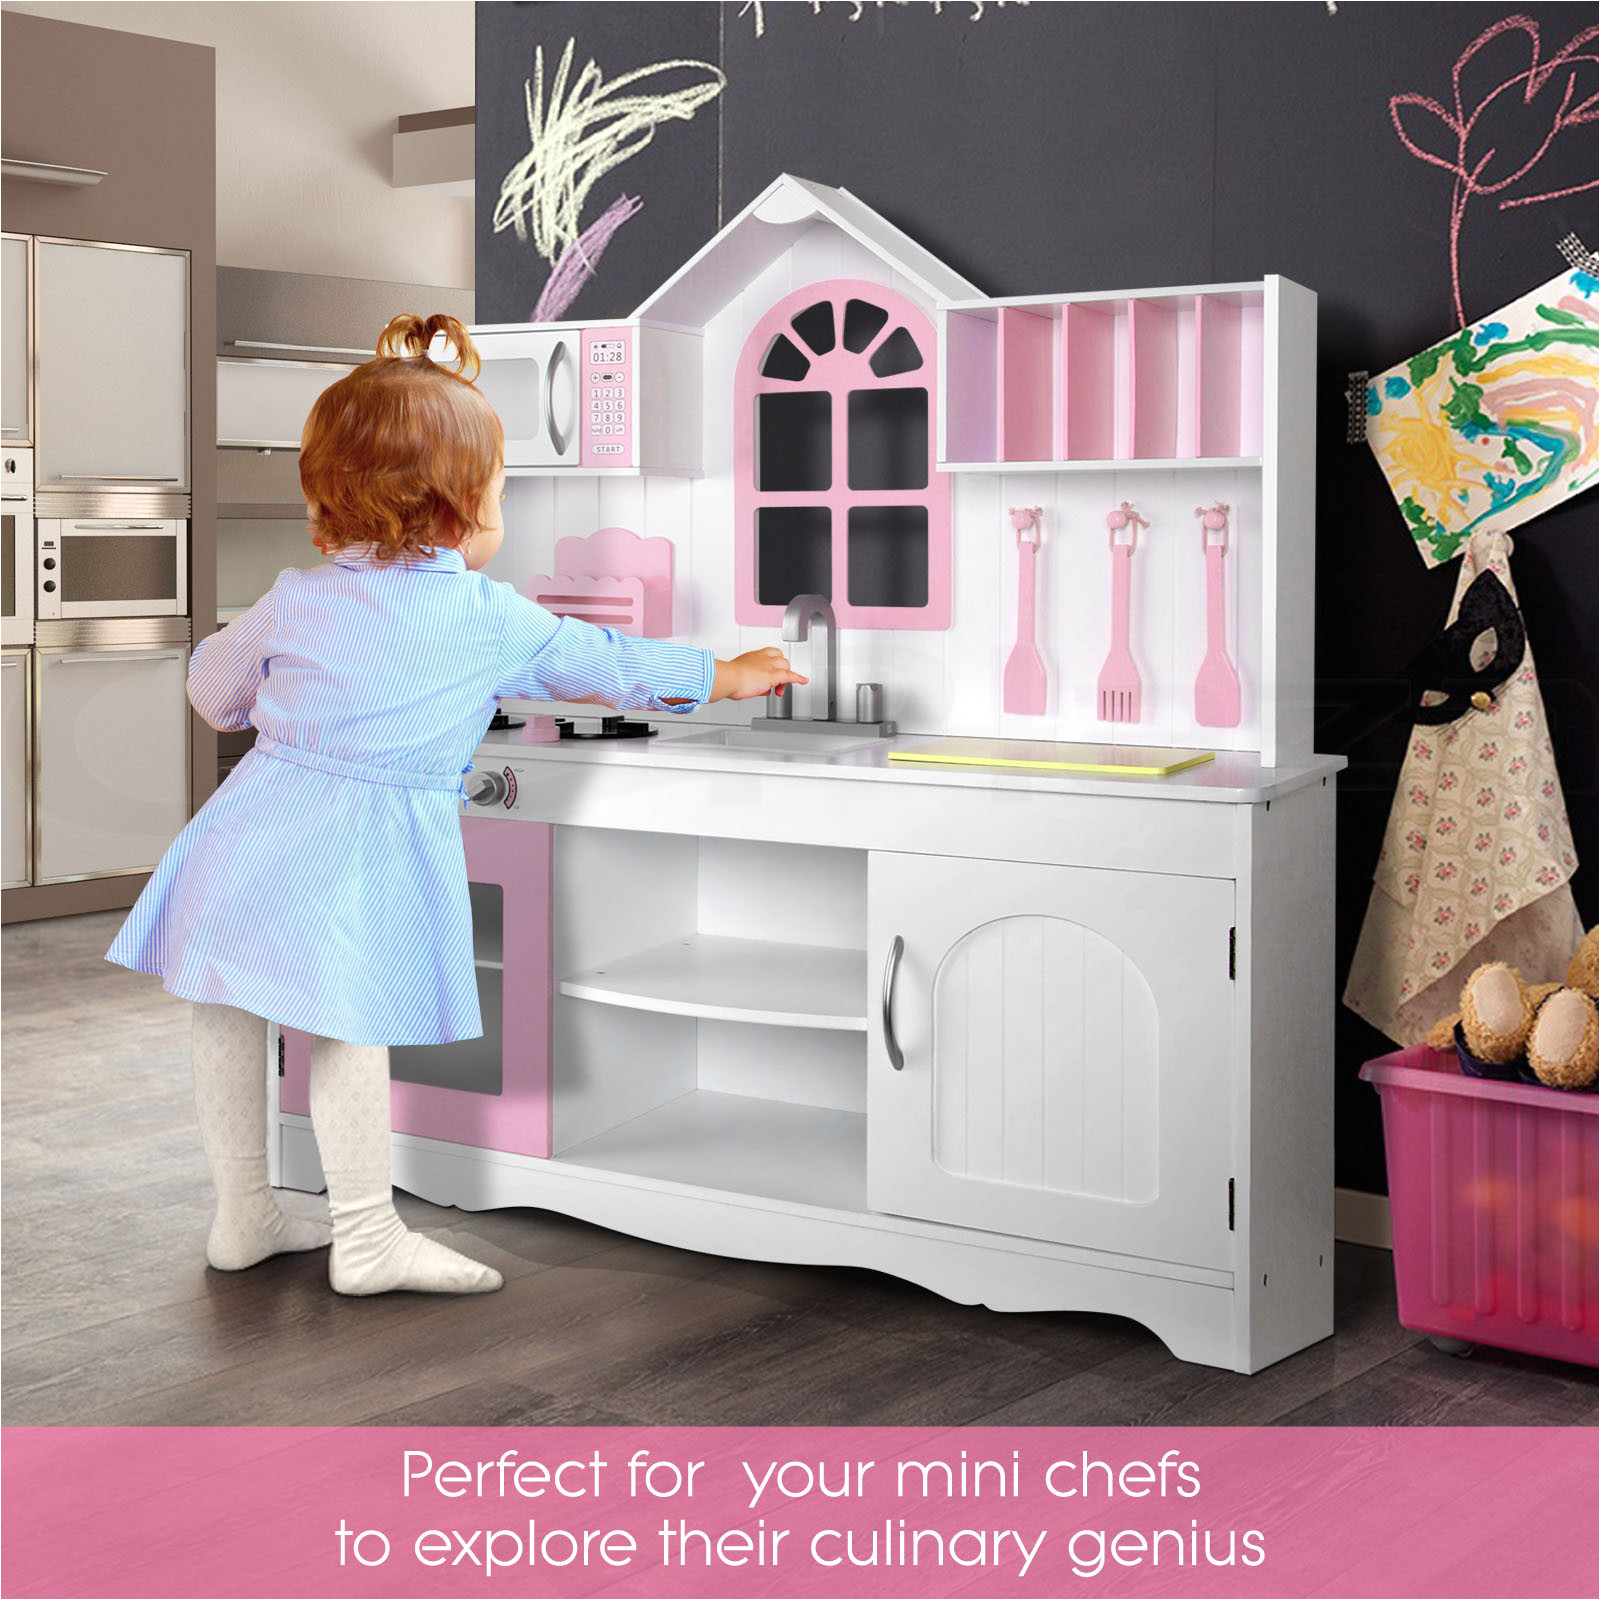 charming imaginarium all in one wooden kitchen set and toy wood kitchen